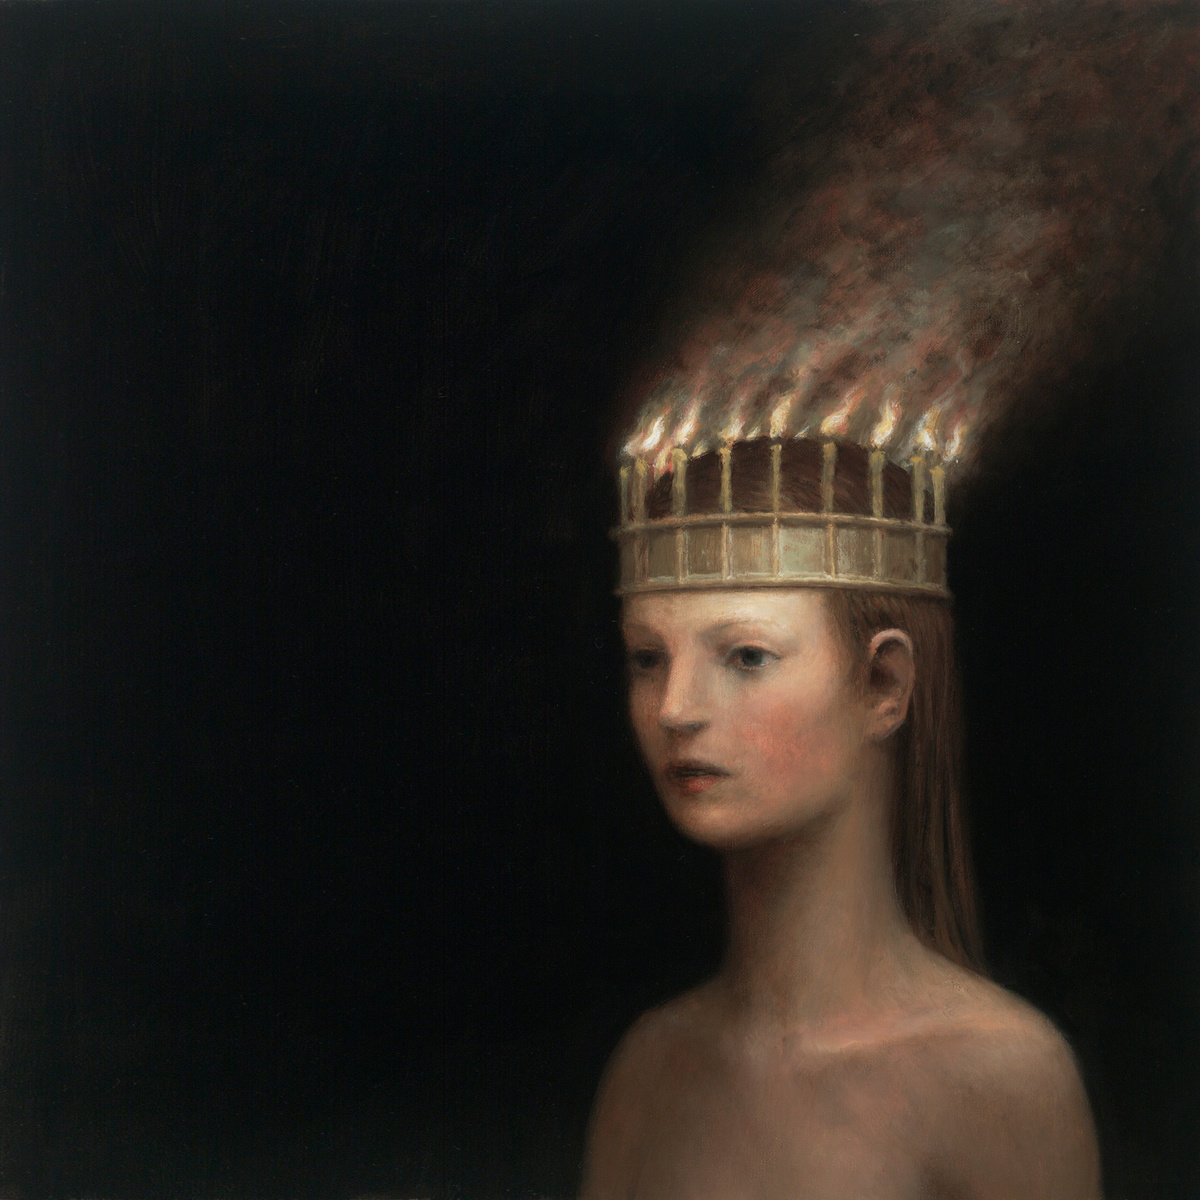 Things You Might Have Missed 2014: Mantar – Death By Burning